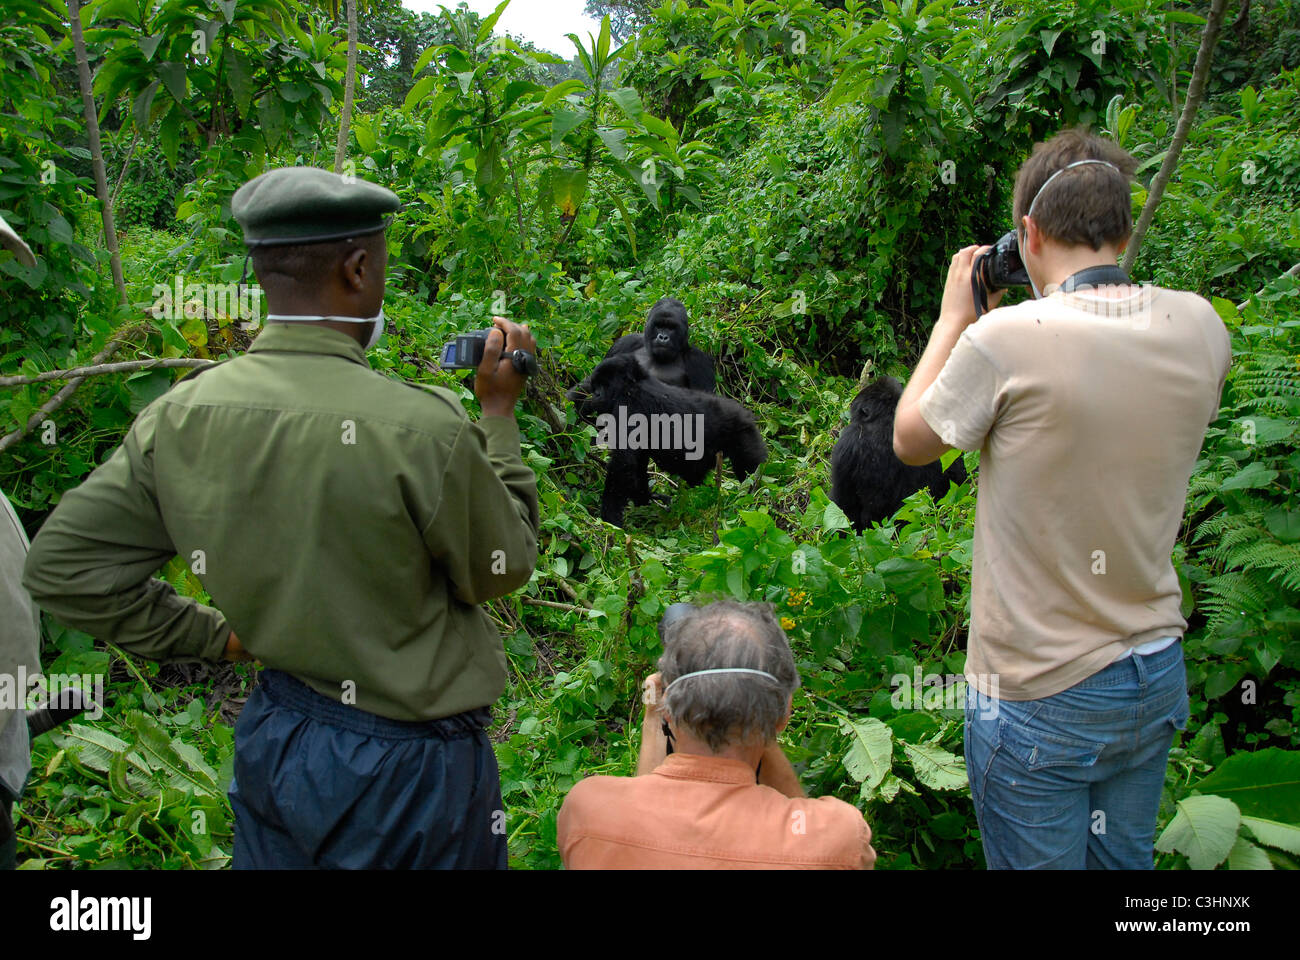 Photographing gorillas at Buhimo in the Virunga National park, Democratic Republic of Congo. Silverback Humba, with - Stock Image